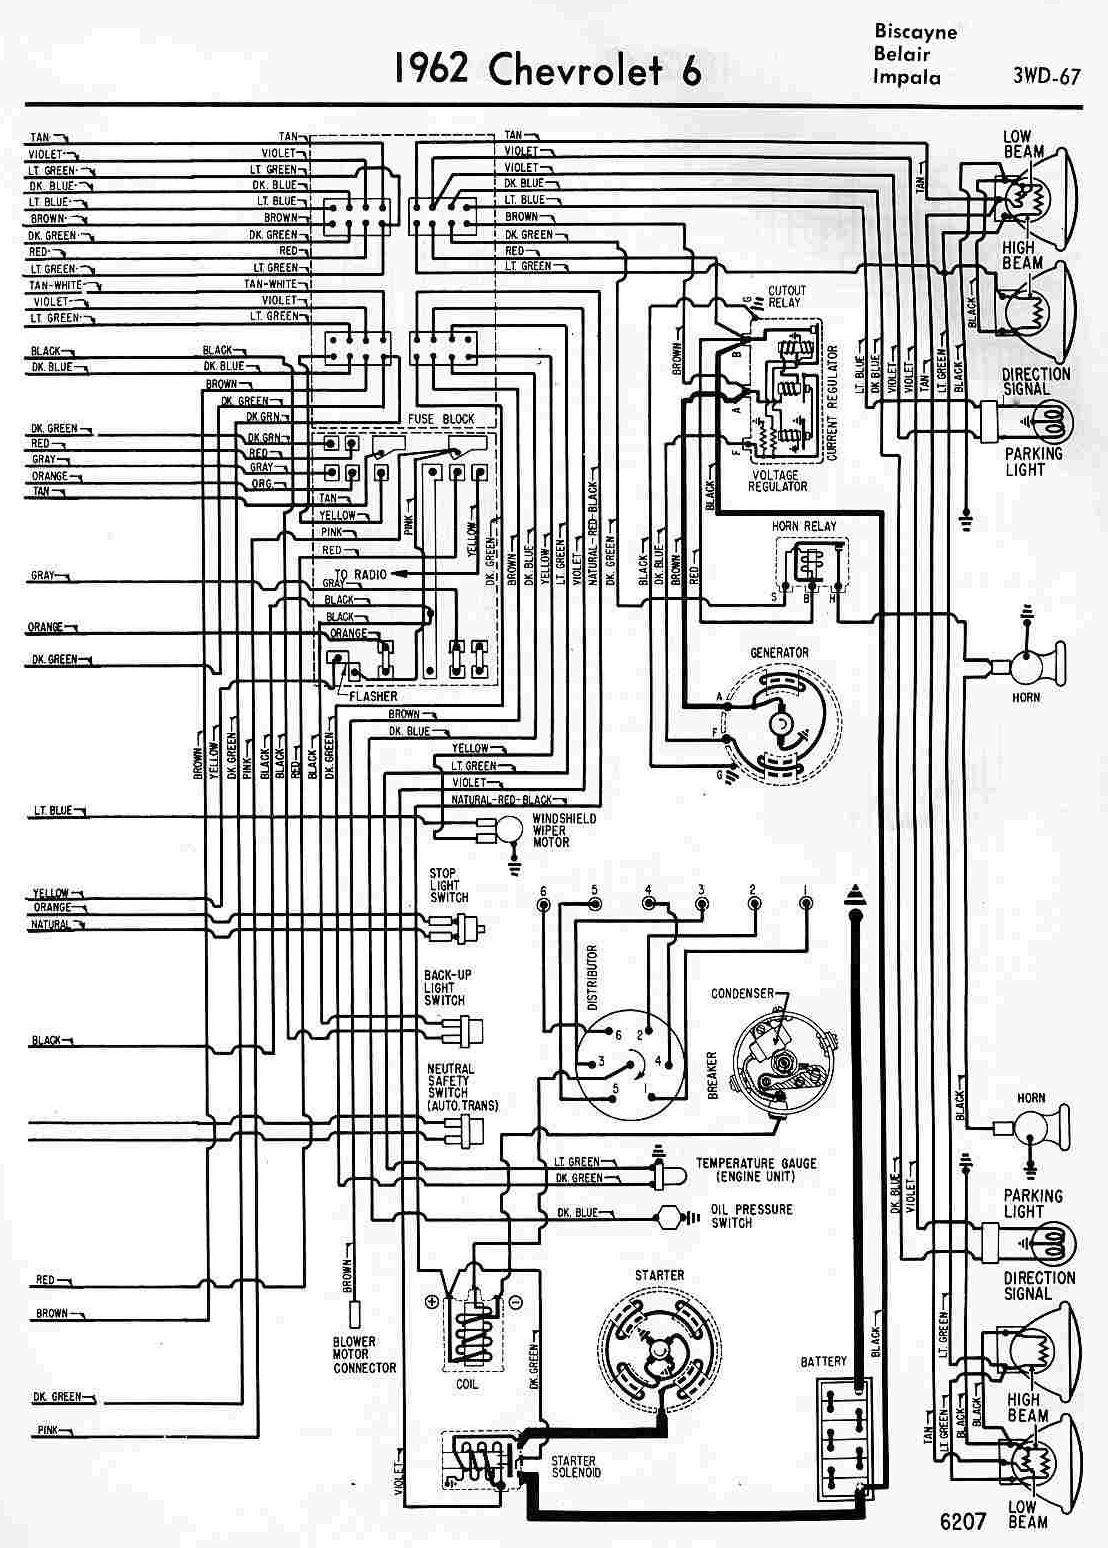 2001 Monte Carlo Ignition Wiring Diagram - House Wiring Diagram ...